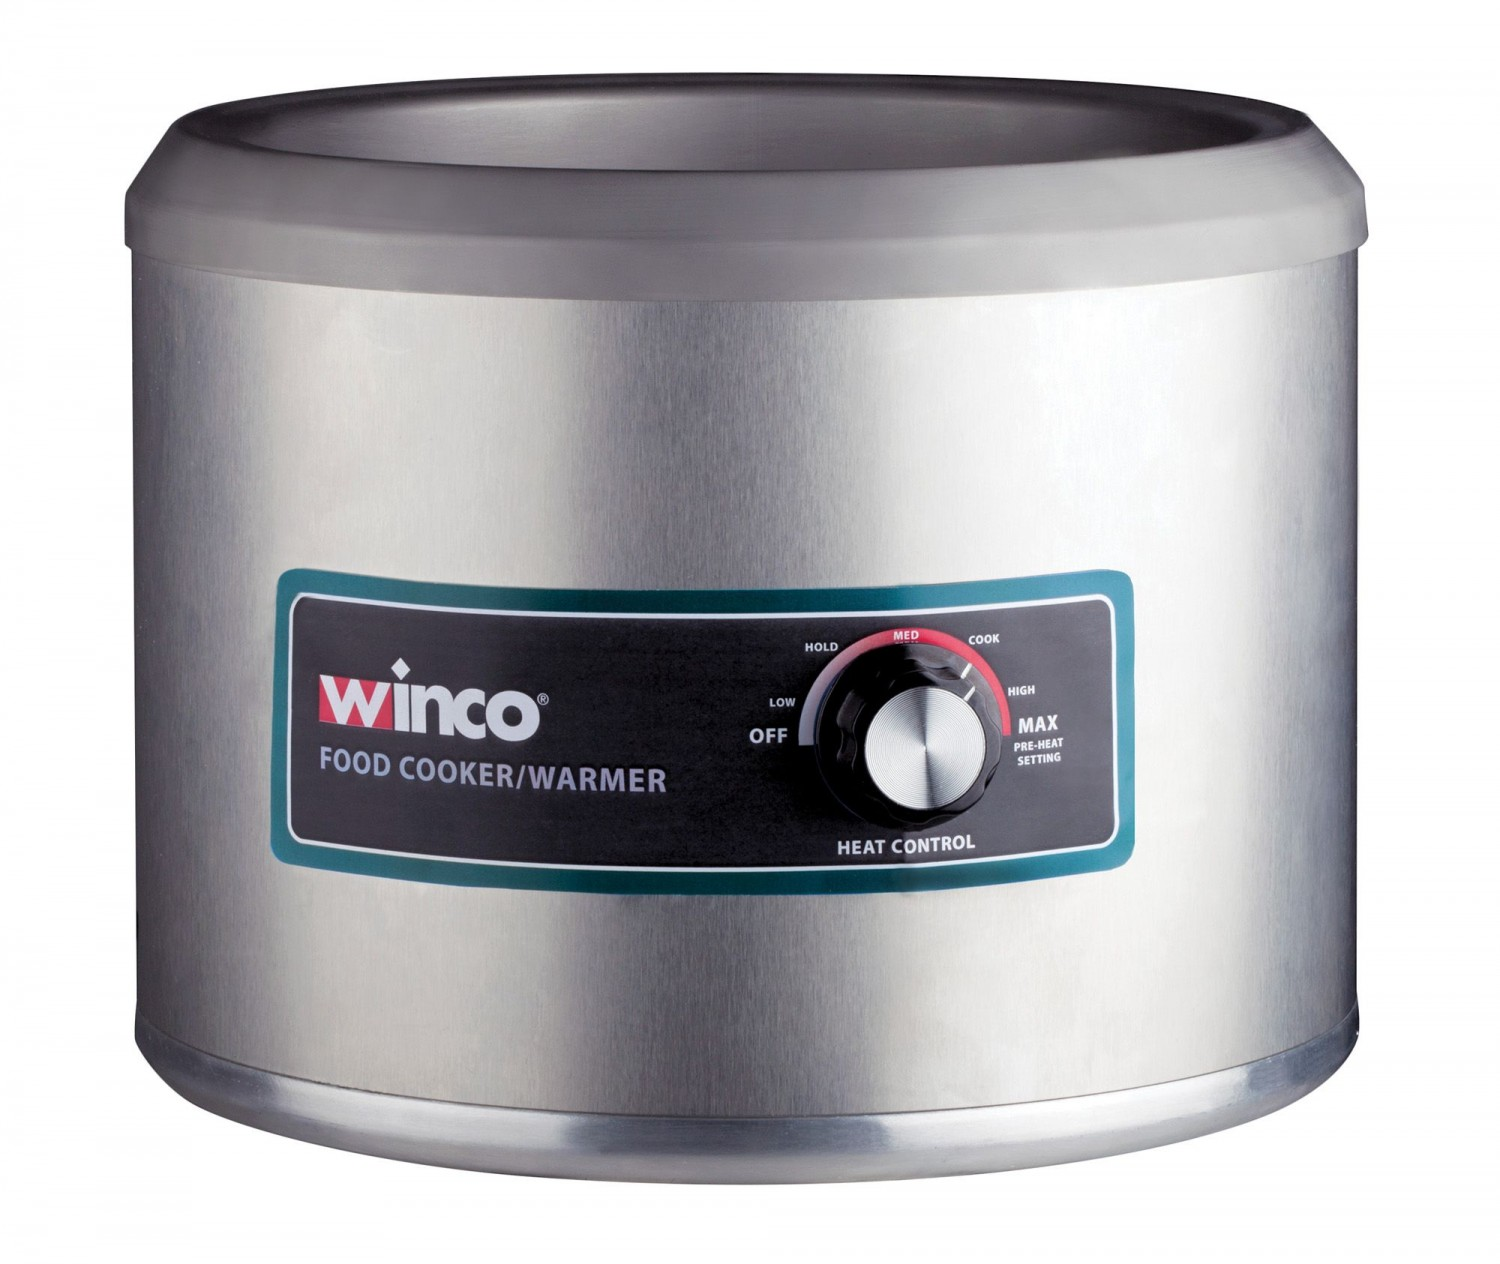 Winco FW-11R500 Round Food Warmer / Cooker, 11 Qt., 120V, 1250 W